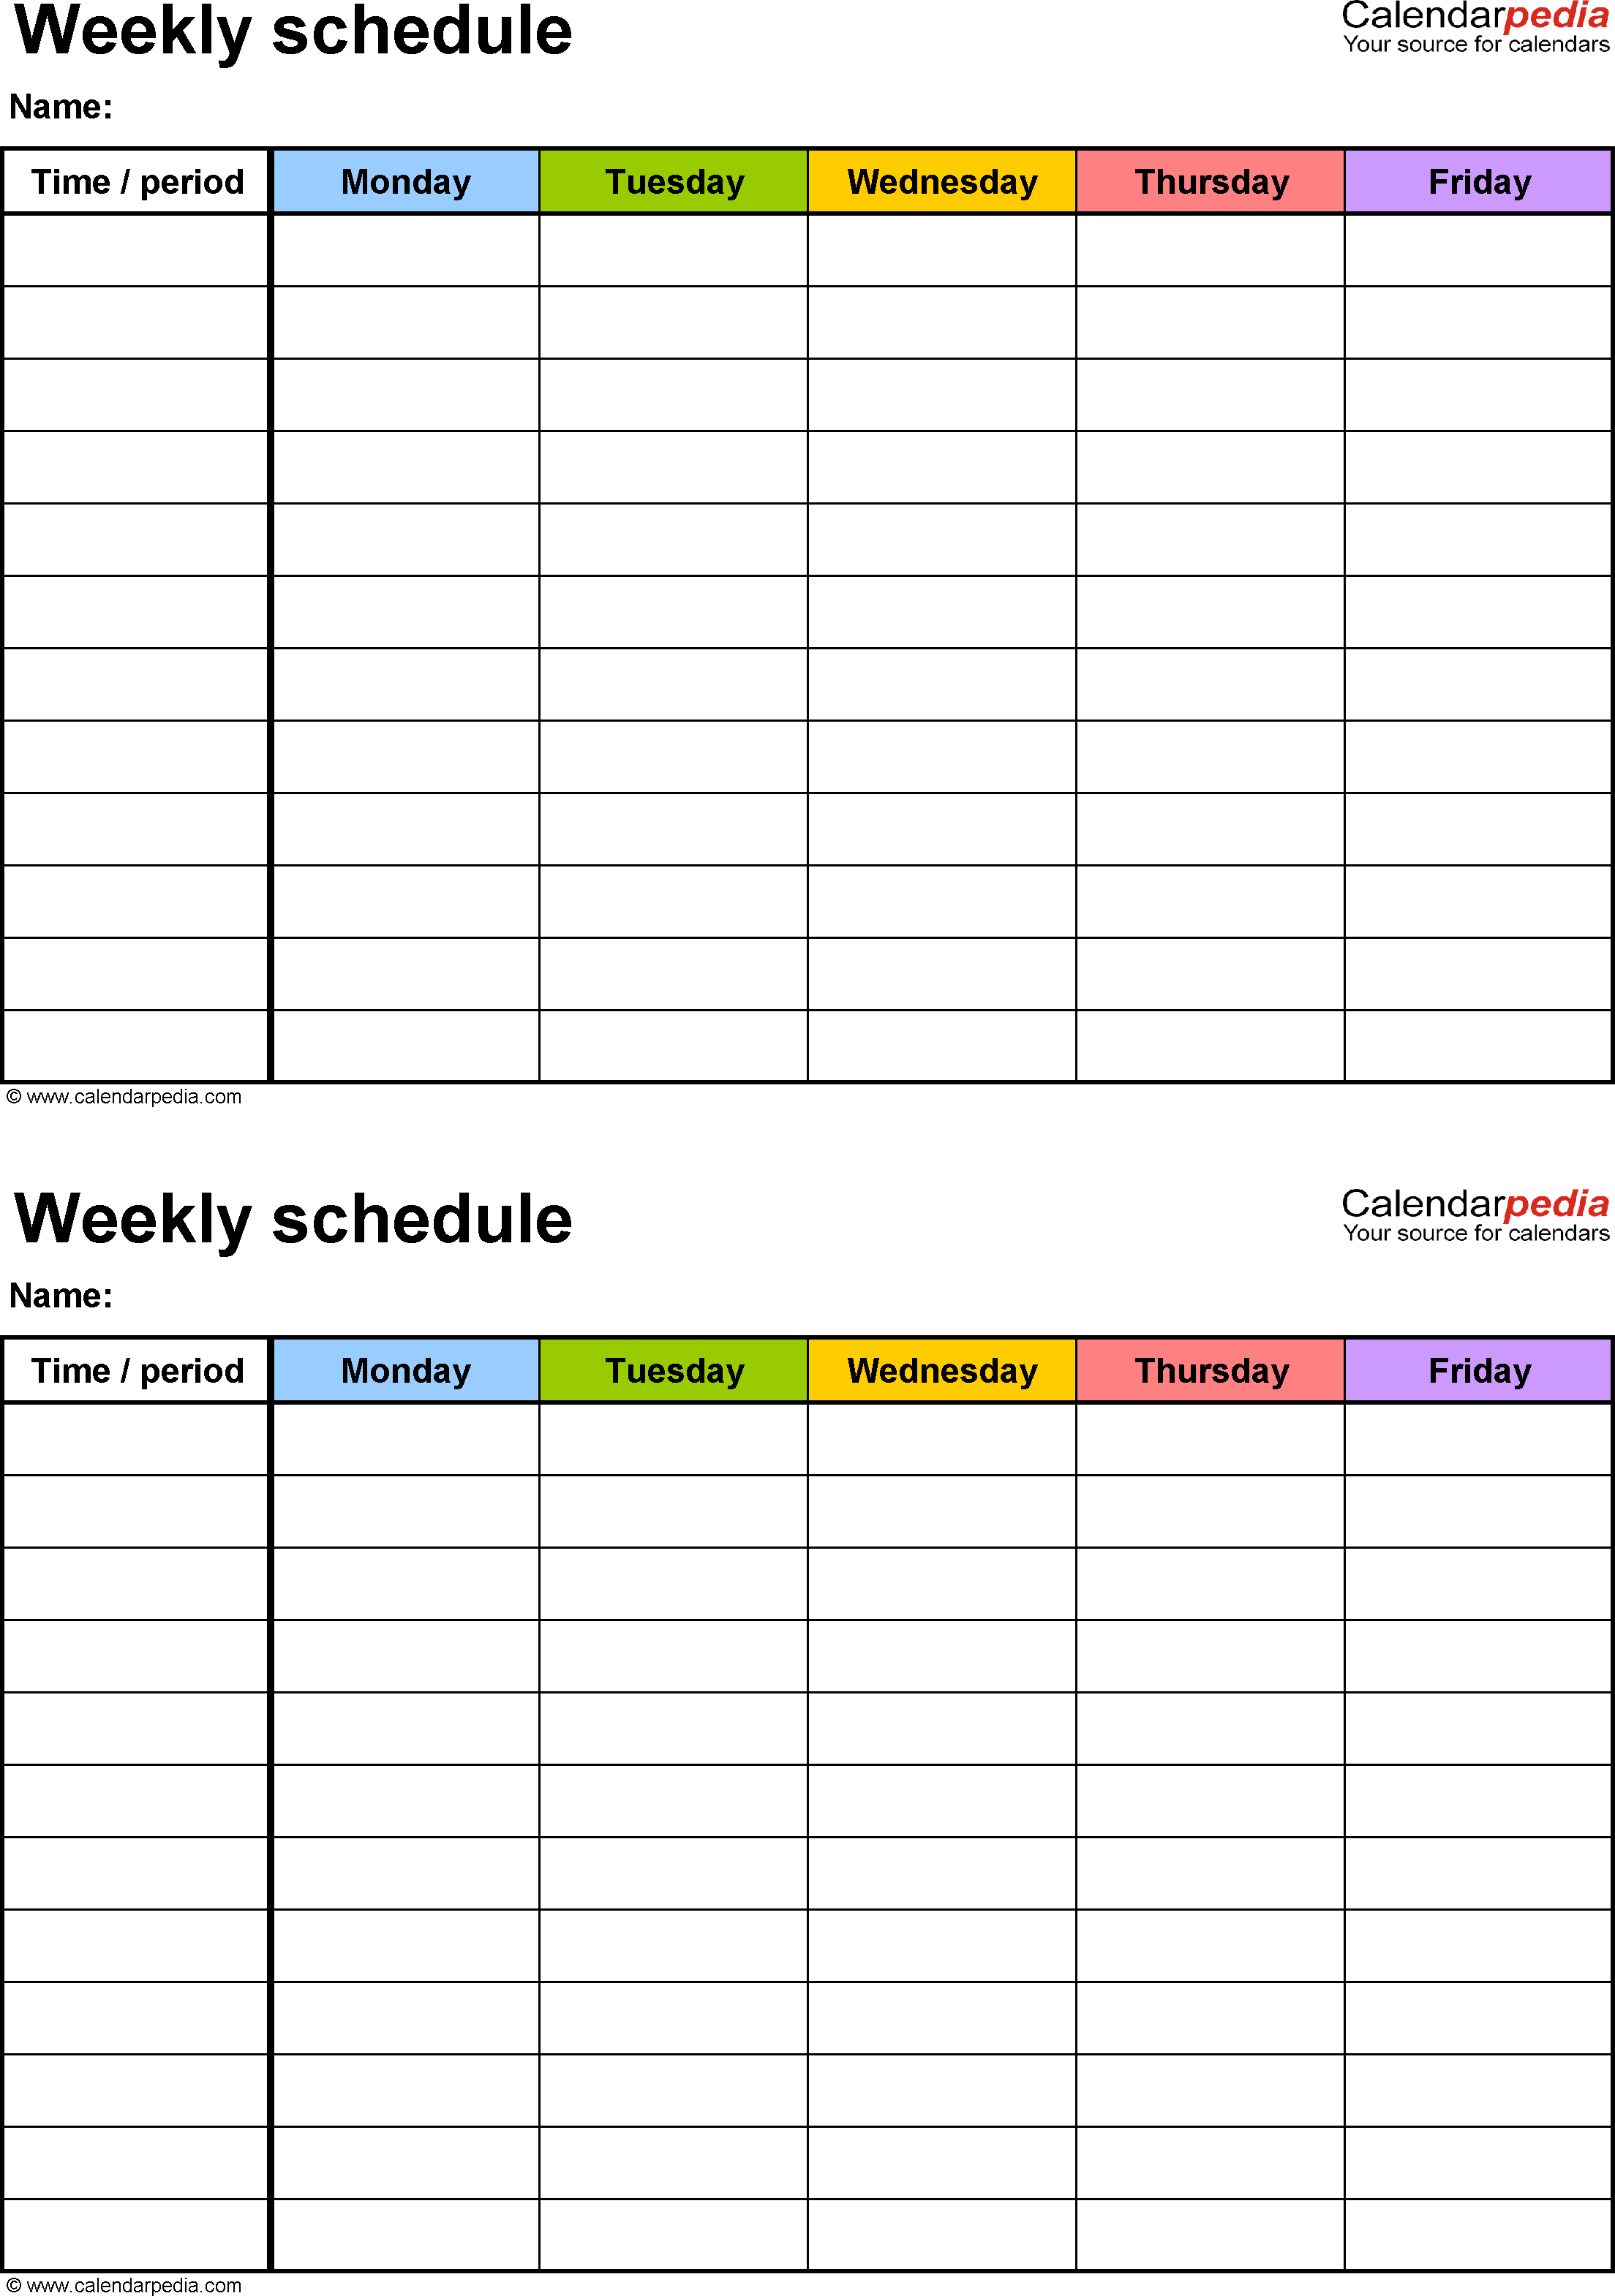 Free Weekly Schedule Templates For Pdf - 18 Templates in Summer Schedule Template For Kids